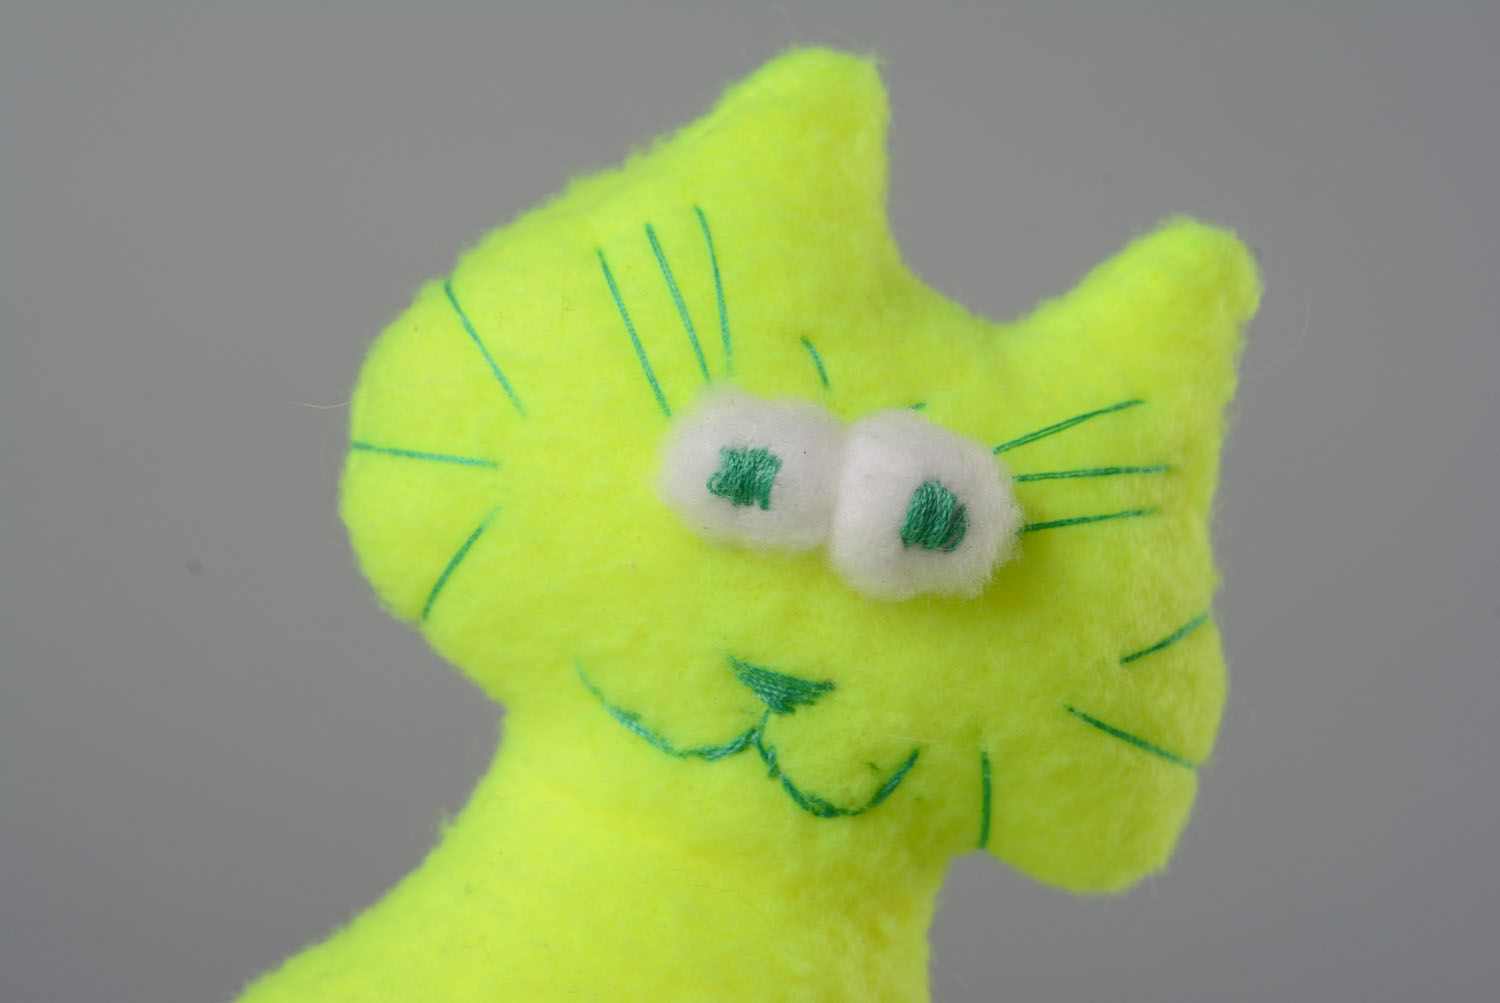 Soft toy in the shape of a yellow and green cat photo 2